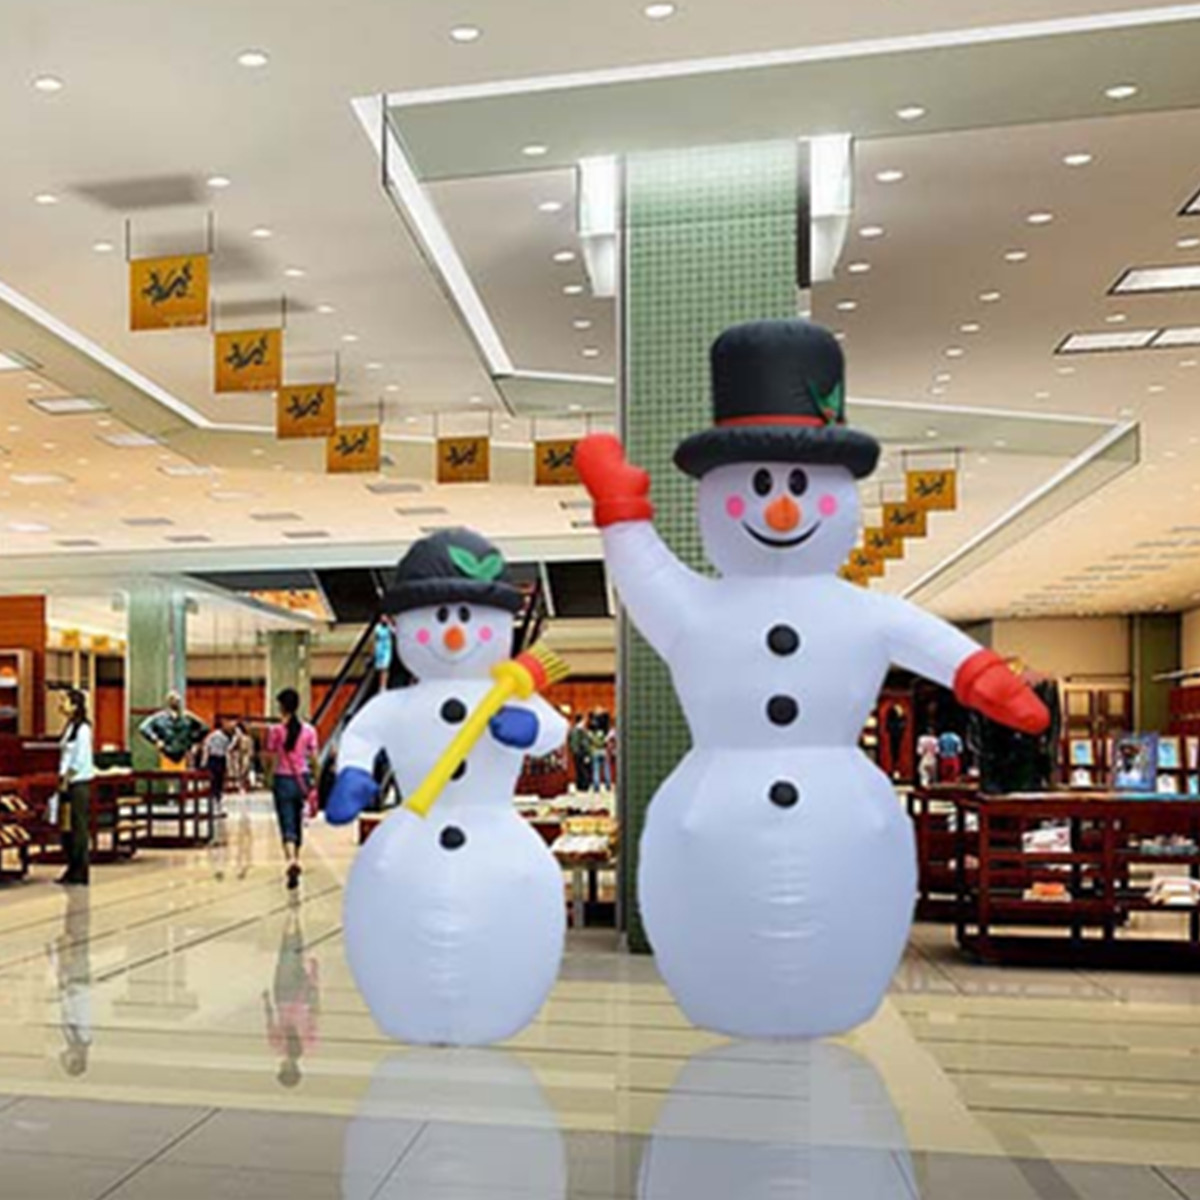 EU plug 180/240CM Giant Inflatable Snowman Christmas Party Props Air Blower Hotels New Year Holiday Lighting LED Light Decor x085 hot sell giant 4 m christmas inflatable snowman for christmas decoration with air blower